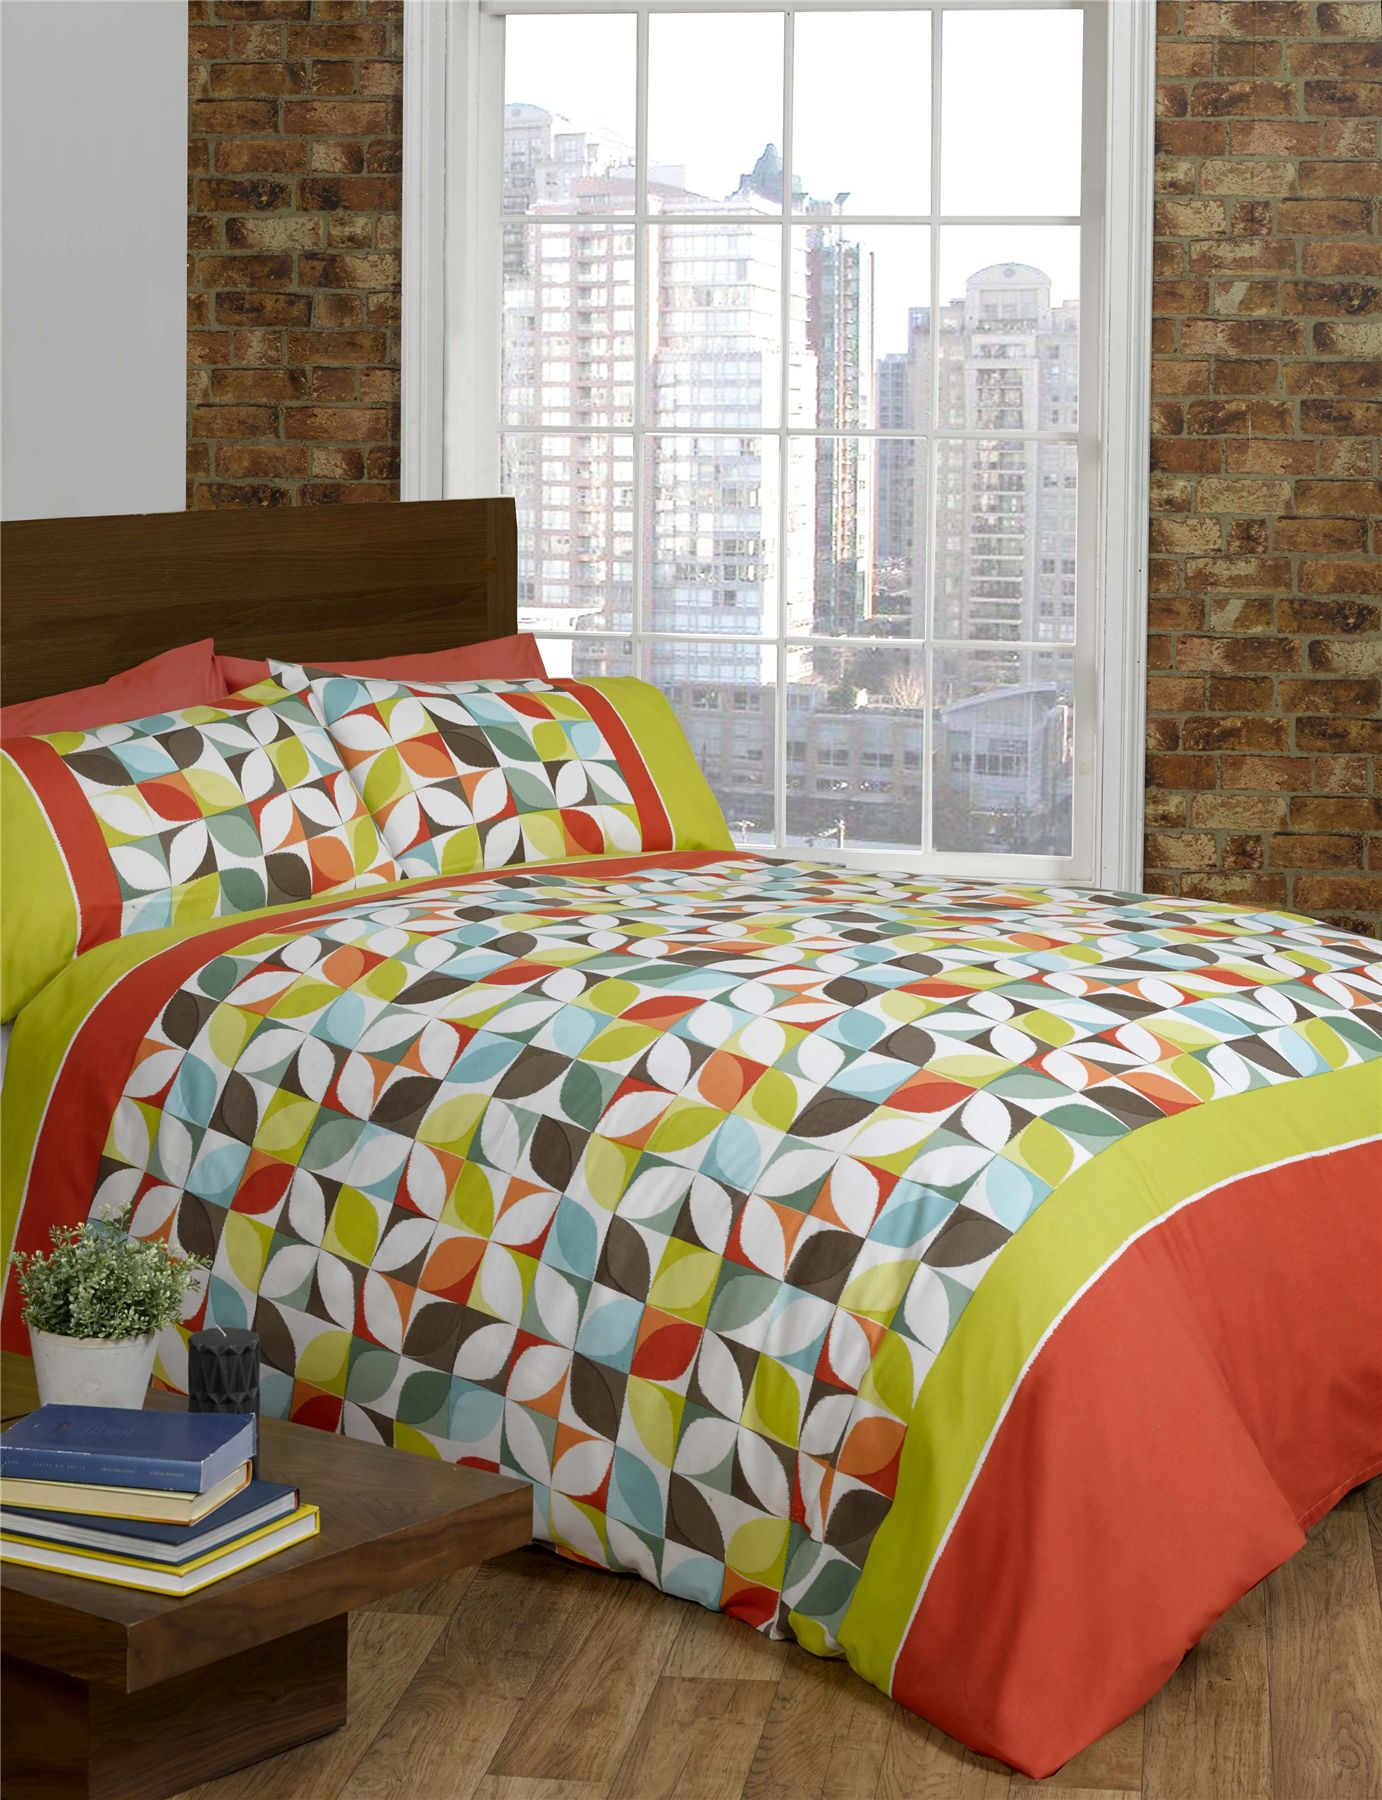 quilt duvet cover amp pillowcase bedding bed set modern  - quiltduvetcoveramppillowcasebeddingbedset